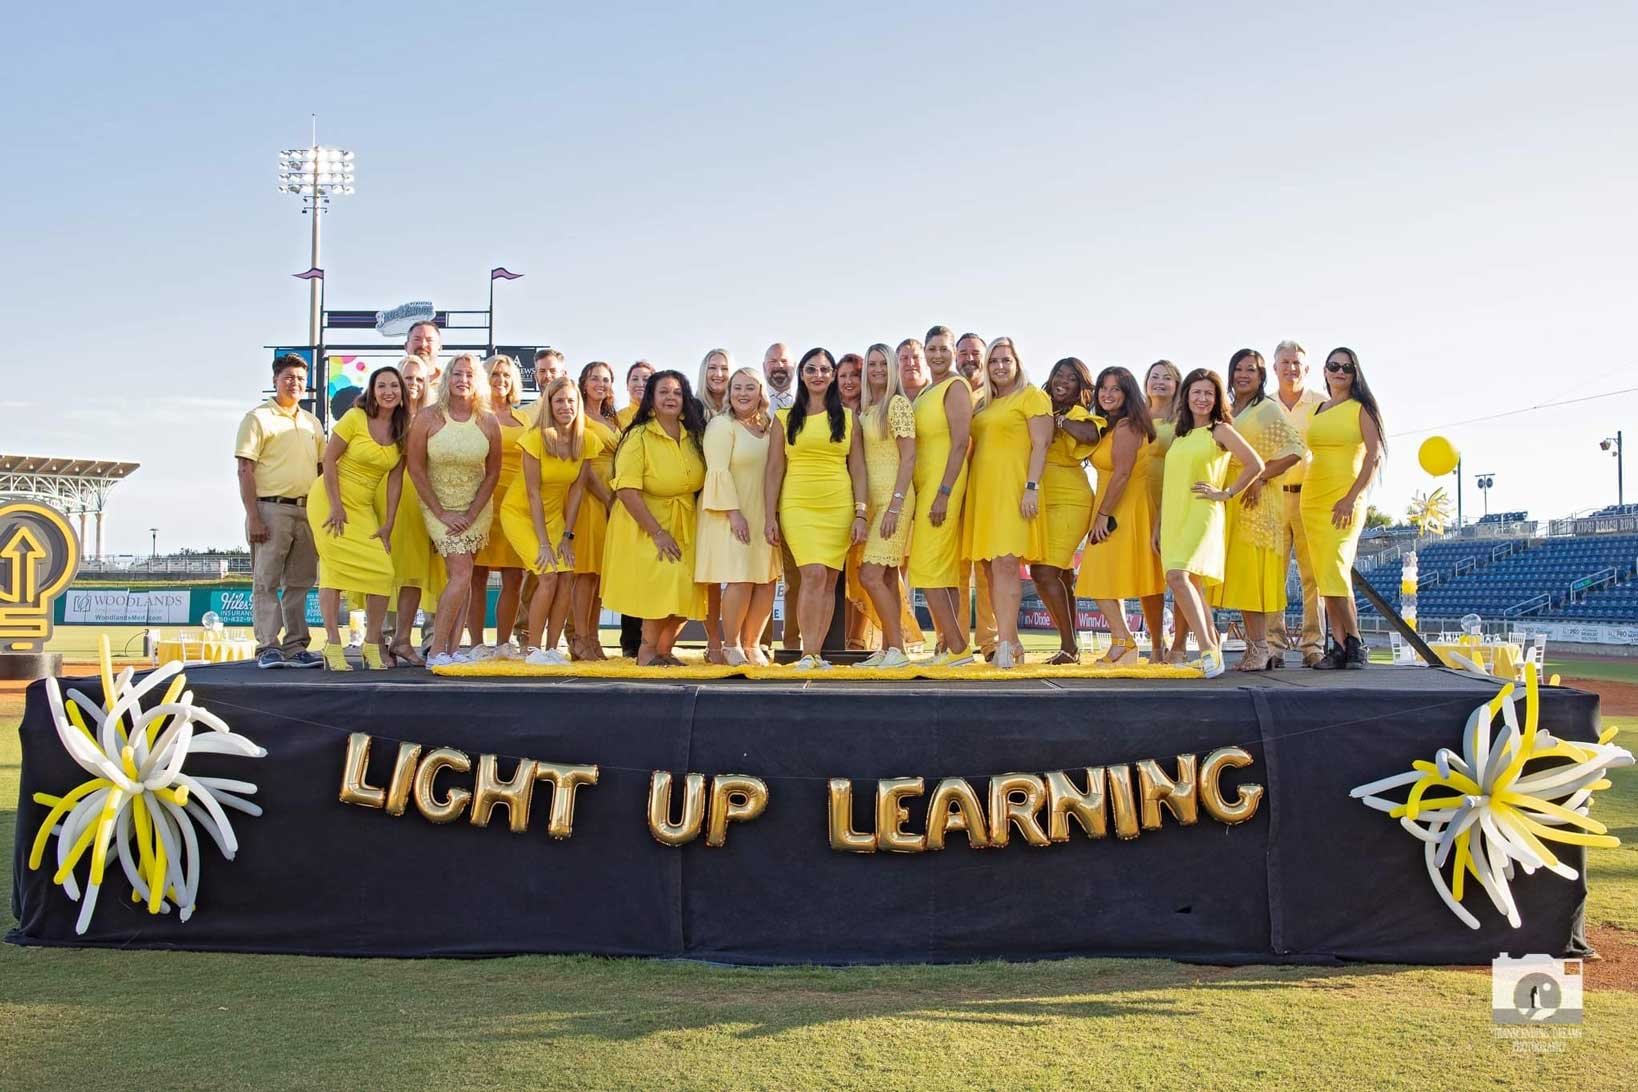 SCI Light Up Learning 2020 - Organizers